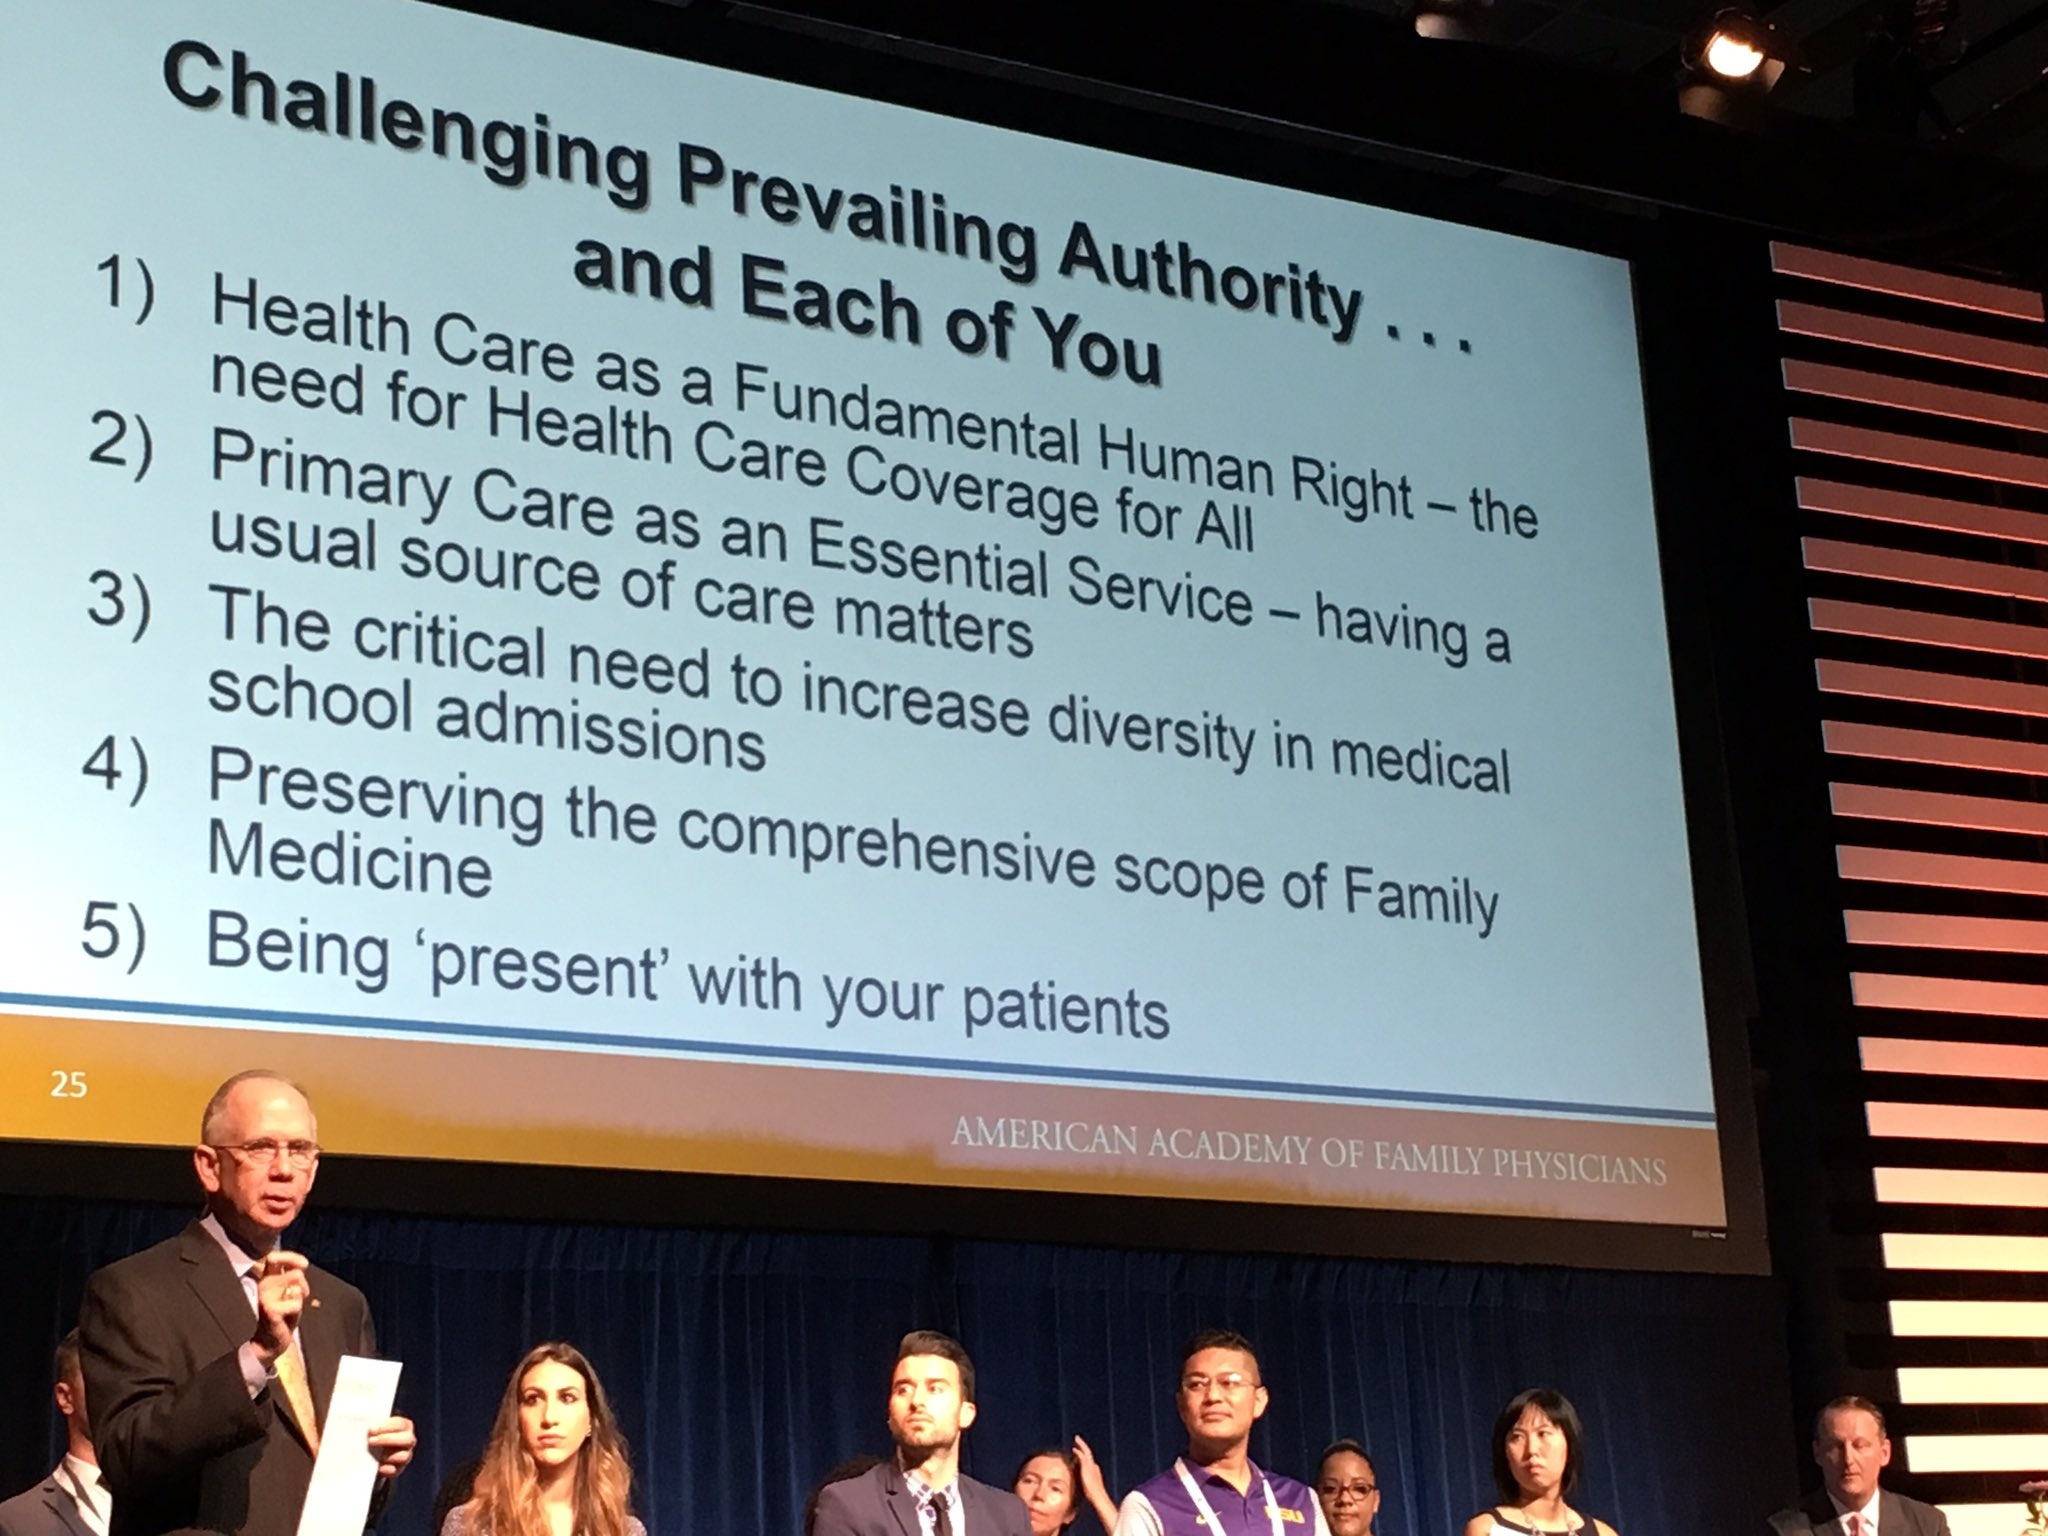 Family physicians must challenge prevailing authority. @dhenleyceo #AAFPNC https://t.co/87mKPGTYUo